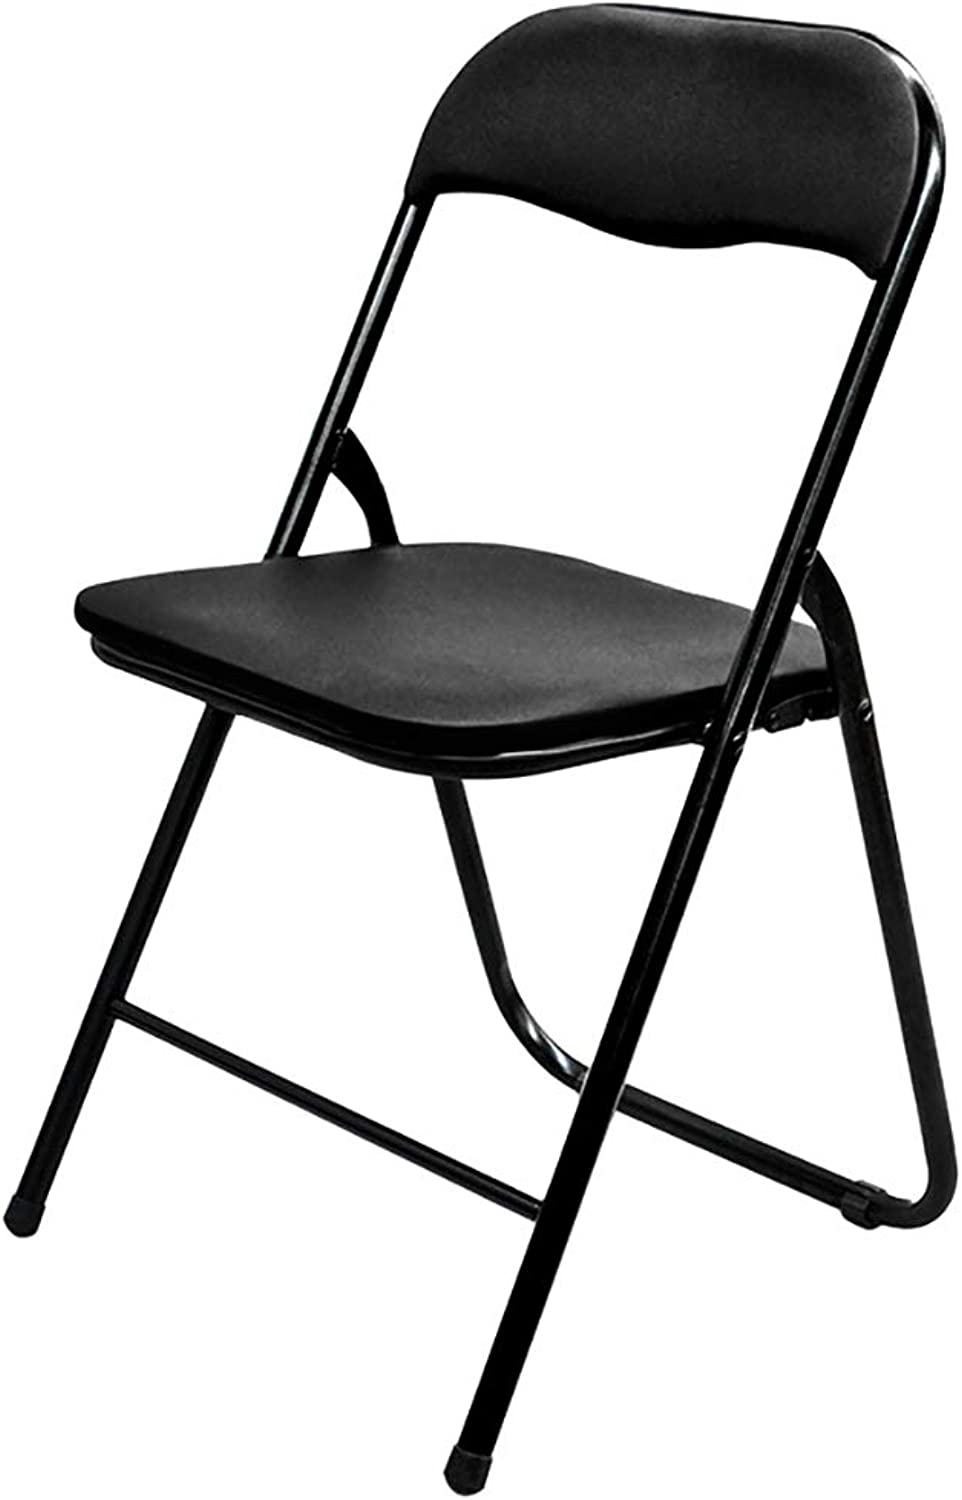 XHLZDY Folding Chair, Dining Chair, Office Chair, Conference Chair, Computer Chair, Stool, Office Training Chair (45×47×79cm)